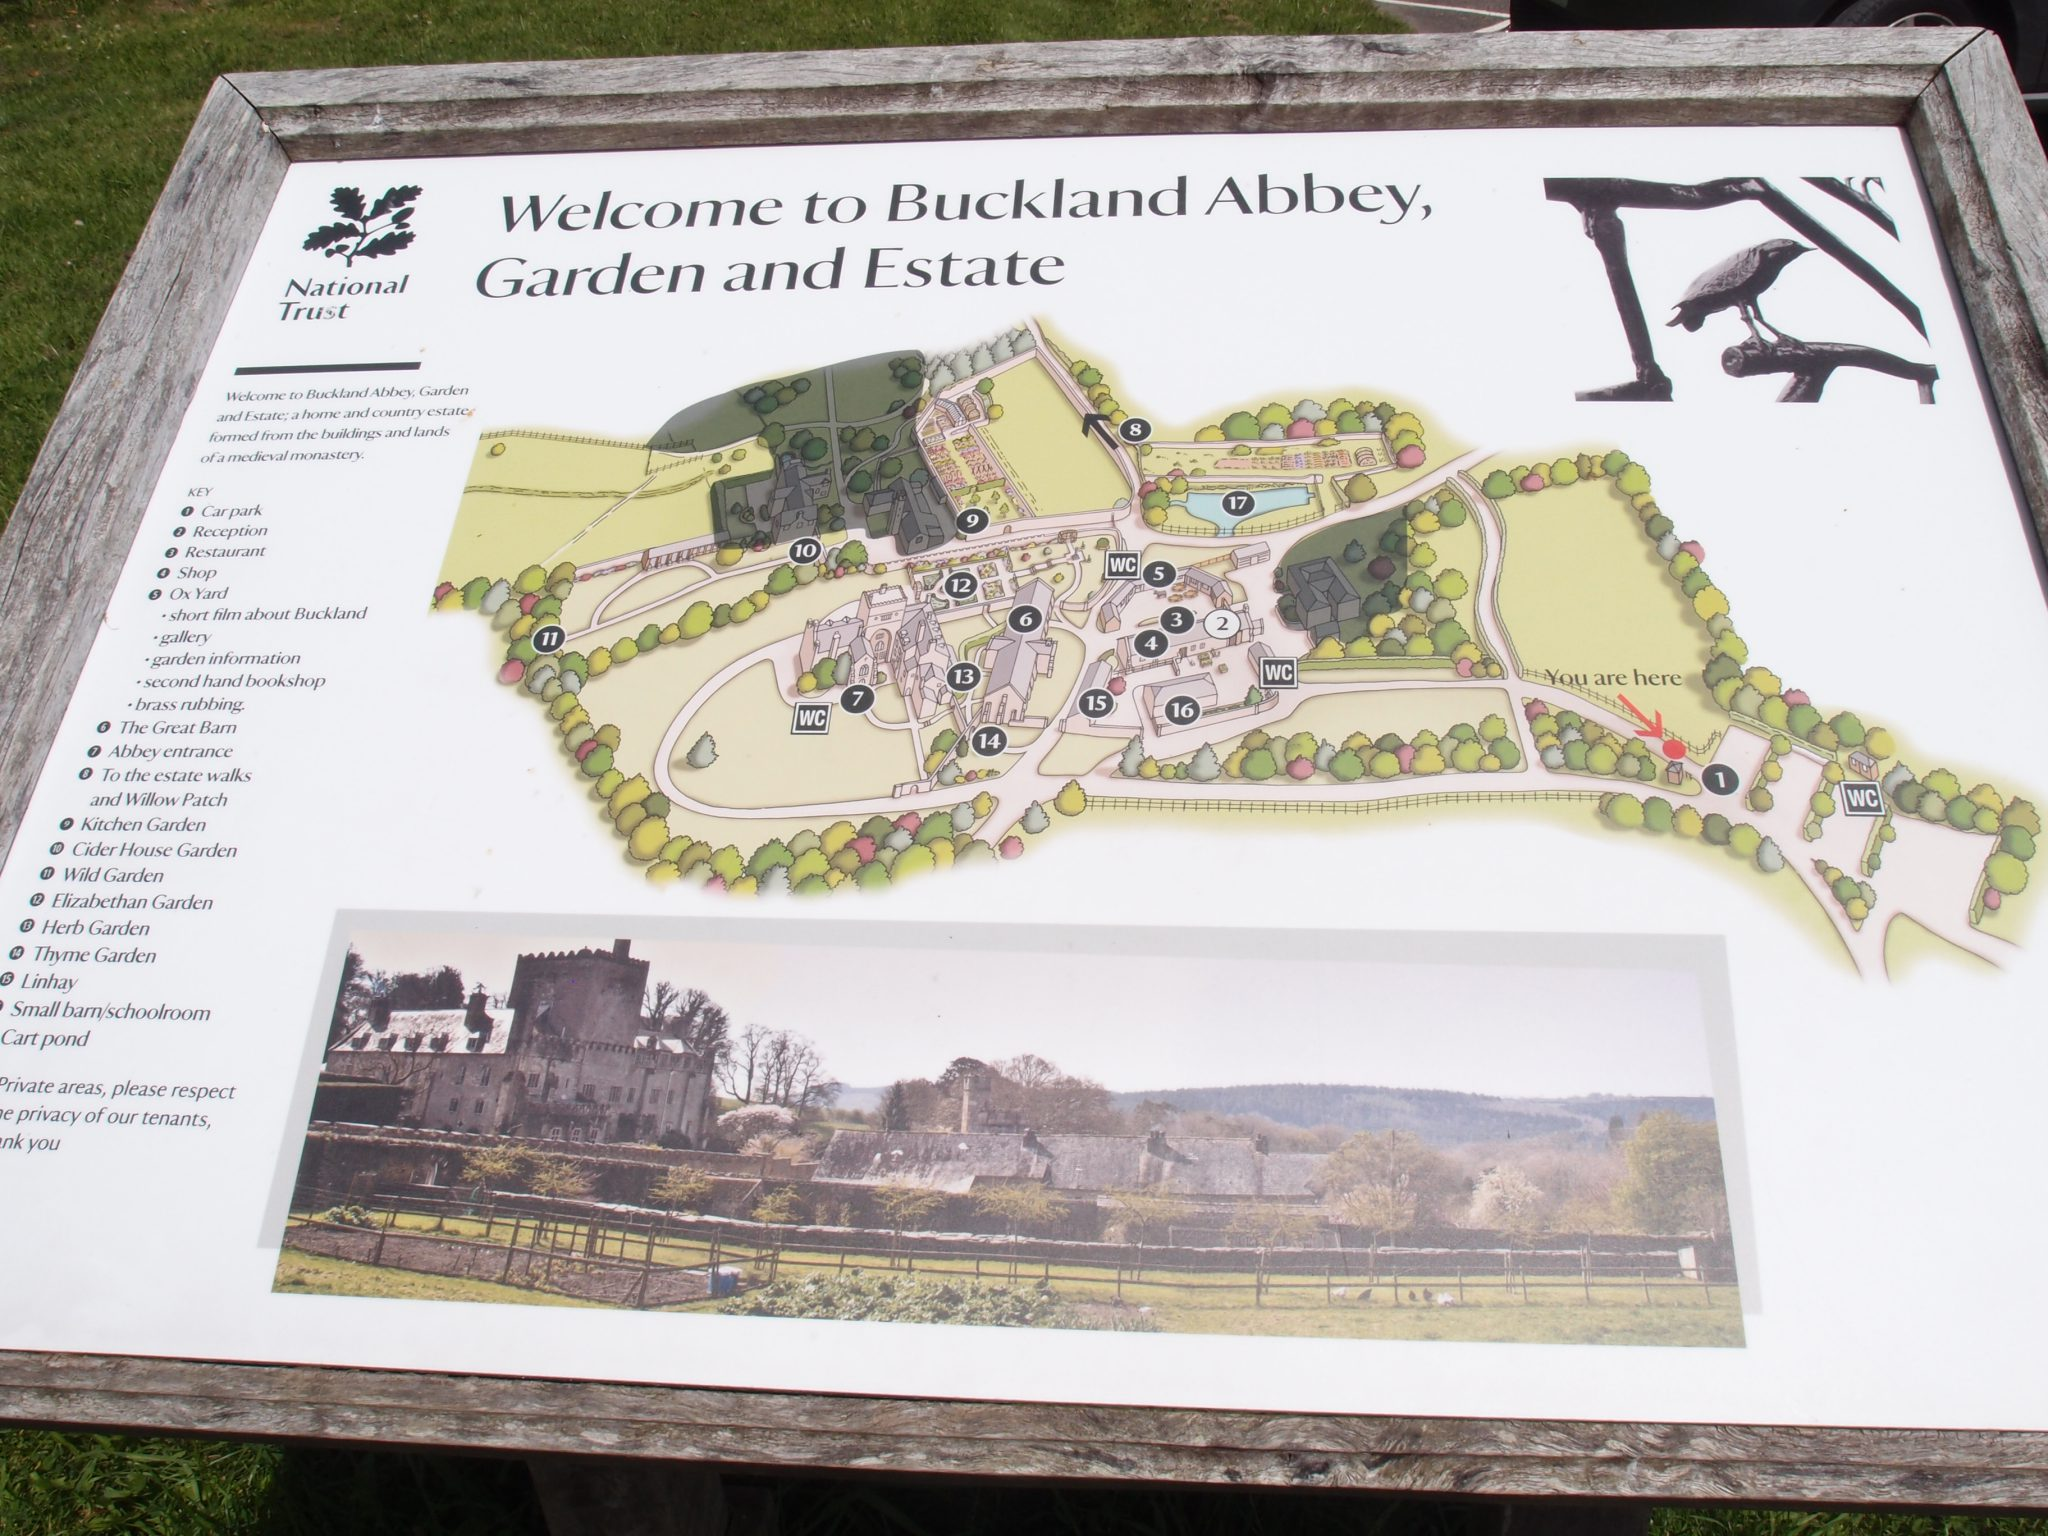 Back at the Car Park, I decided that, at some point in the future, I must return to Buckland Abbey: there are still Estate Walks to explore. (Note: the shaded gray area on the Visitors' Map indicates the Bed & Breakfast area of the Cider House Garden.)